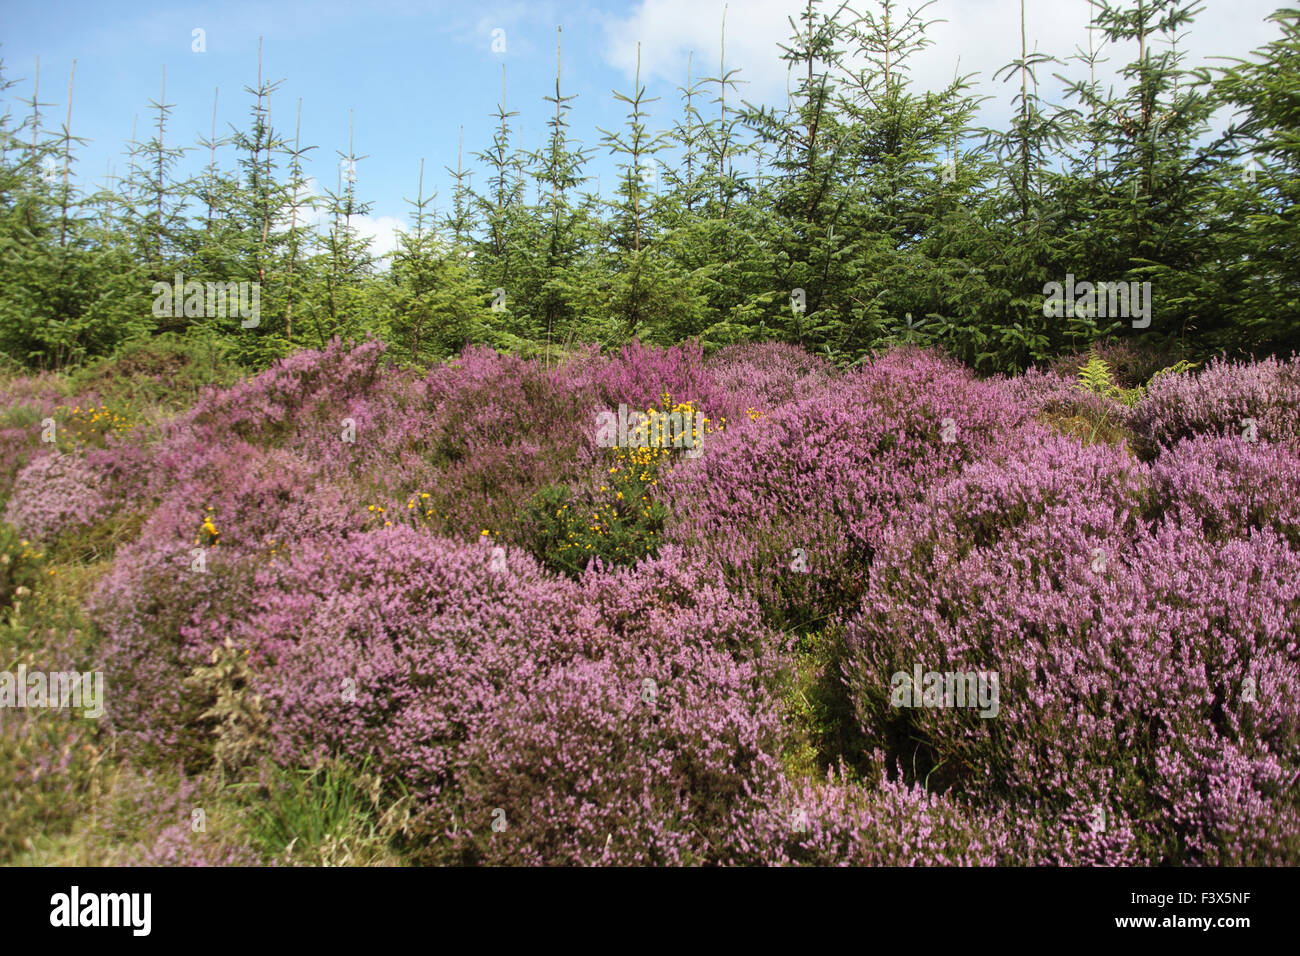 Heather Calluna vulgaris in flower on edge of conifer plantation - Stock Image